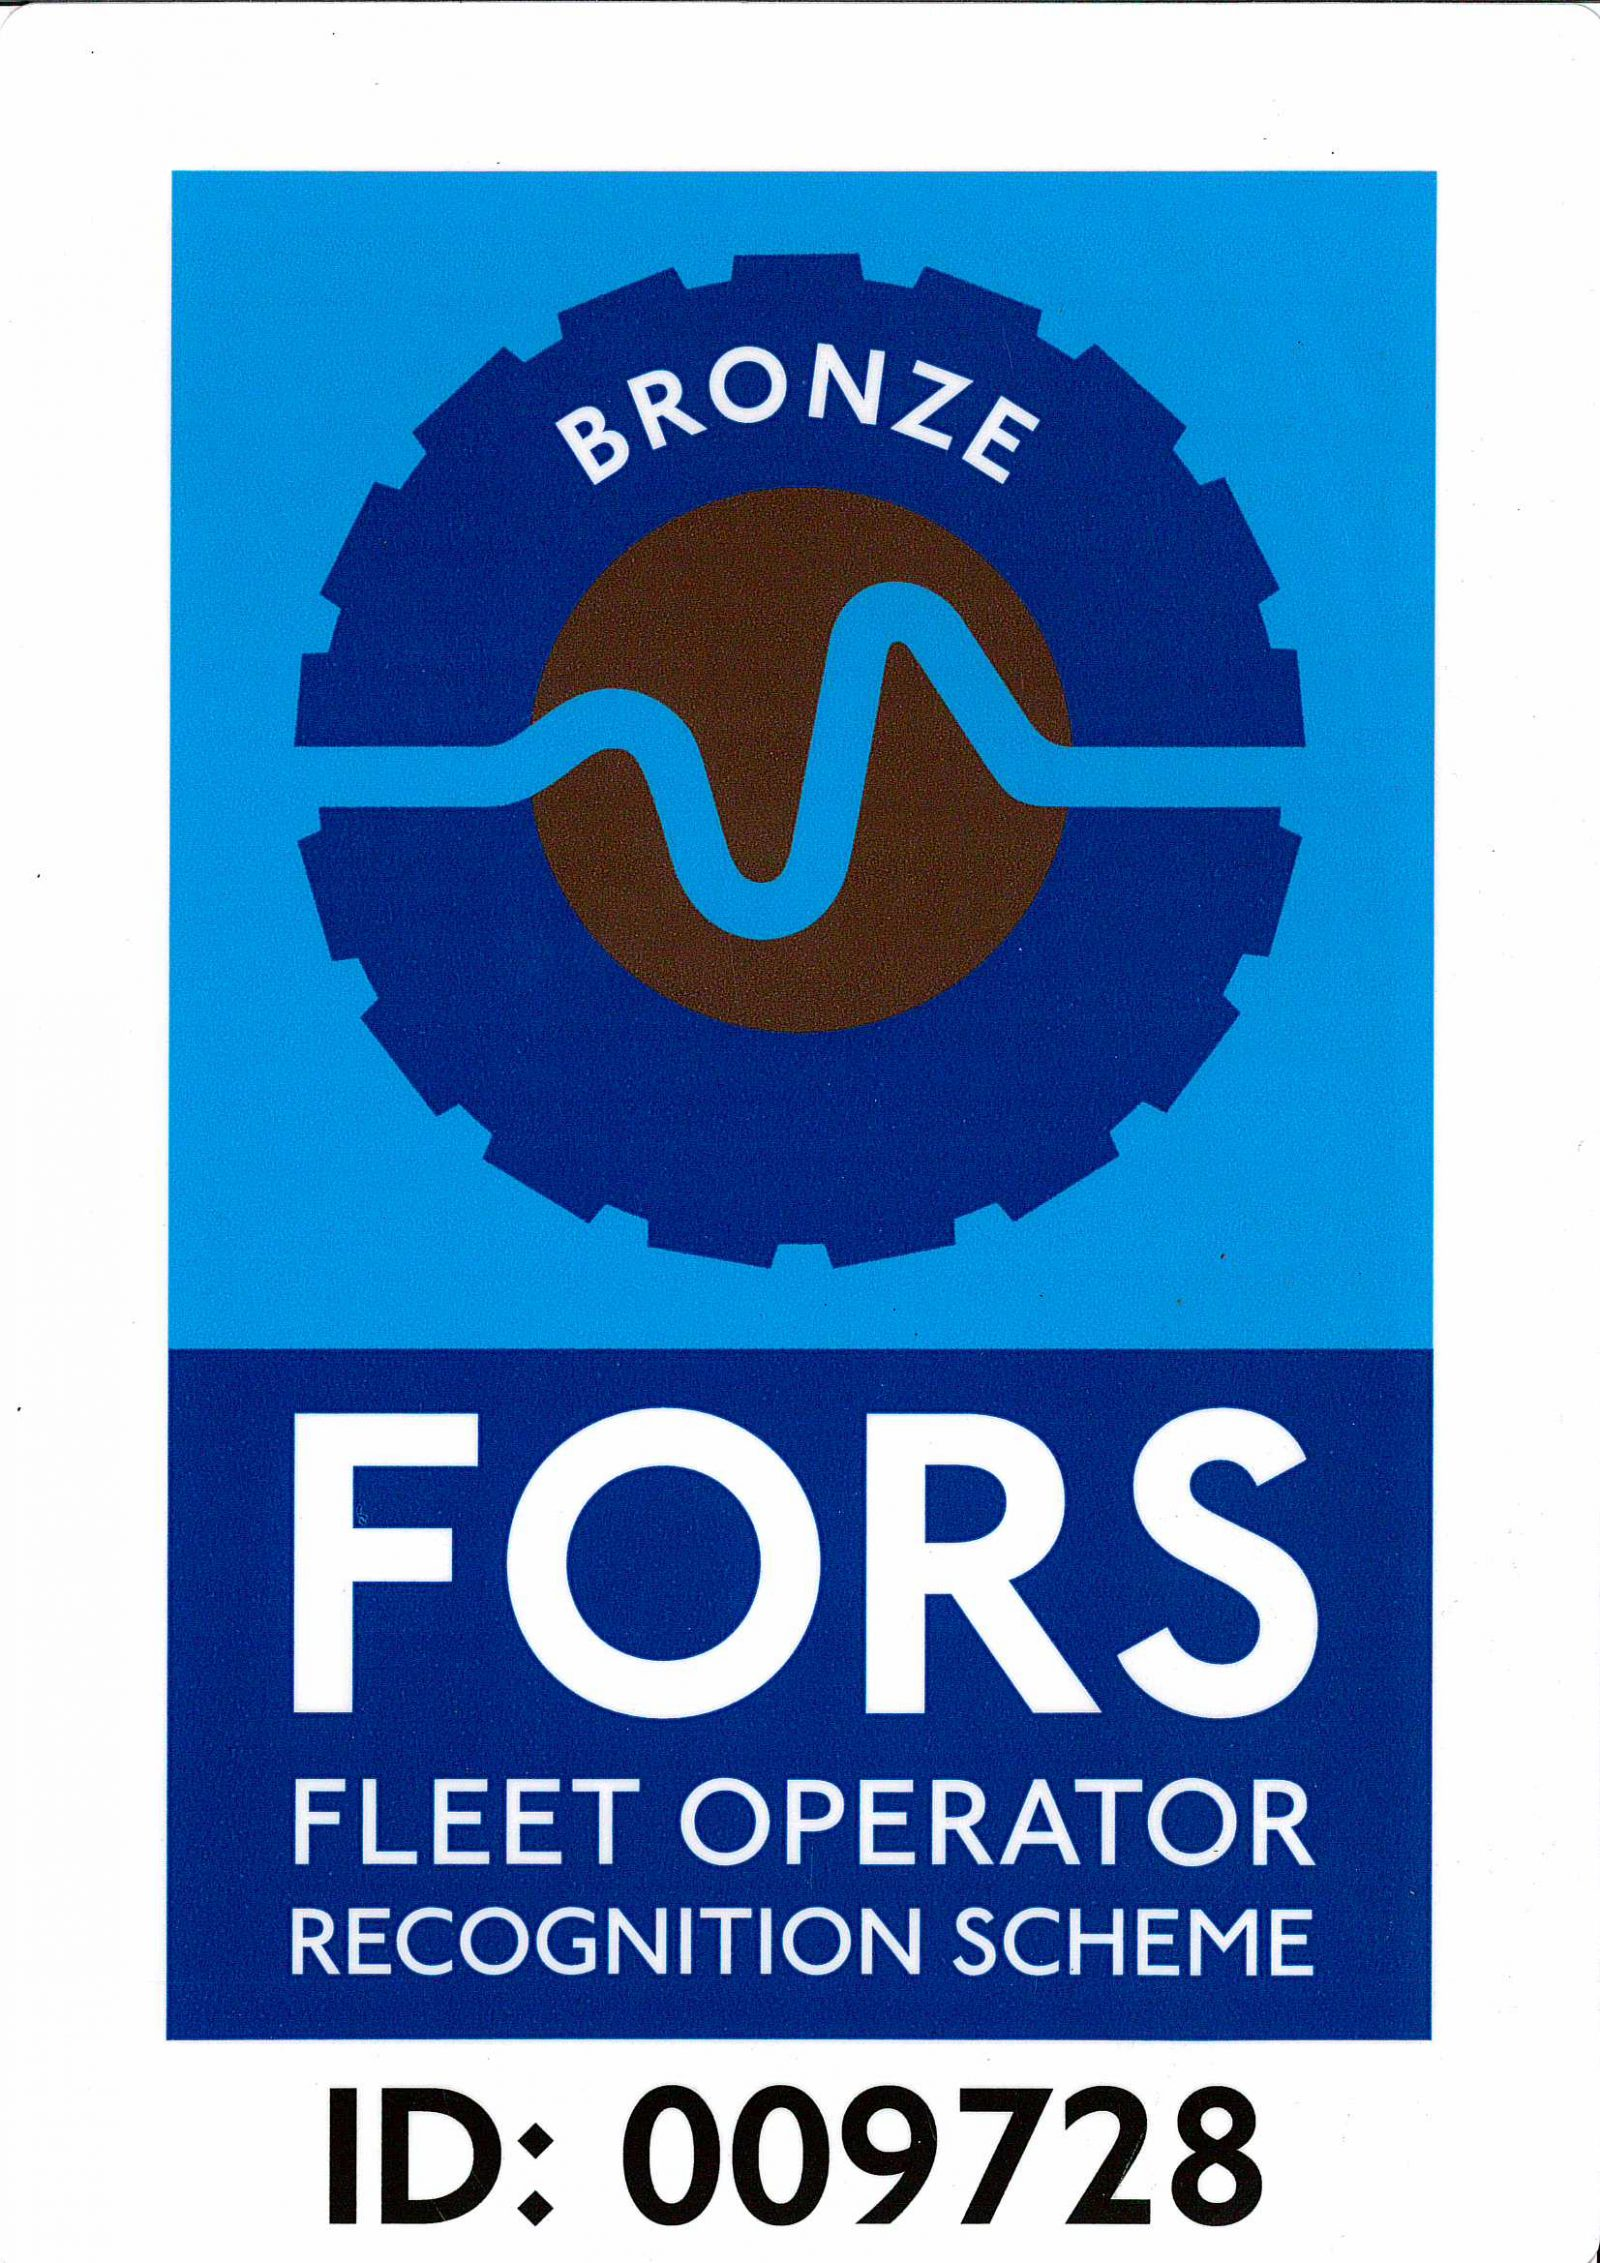 FORS Fleet Operator Recognition